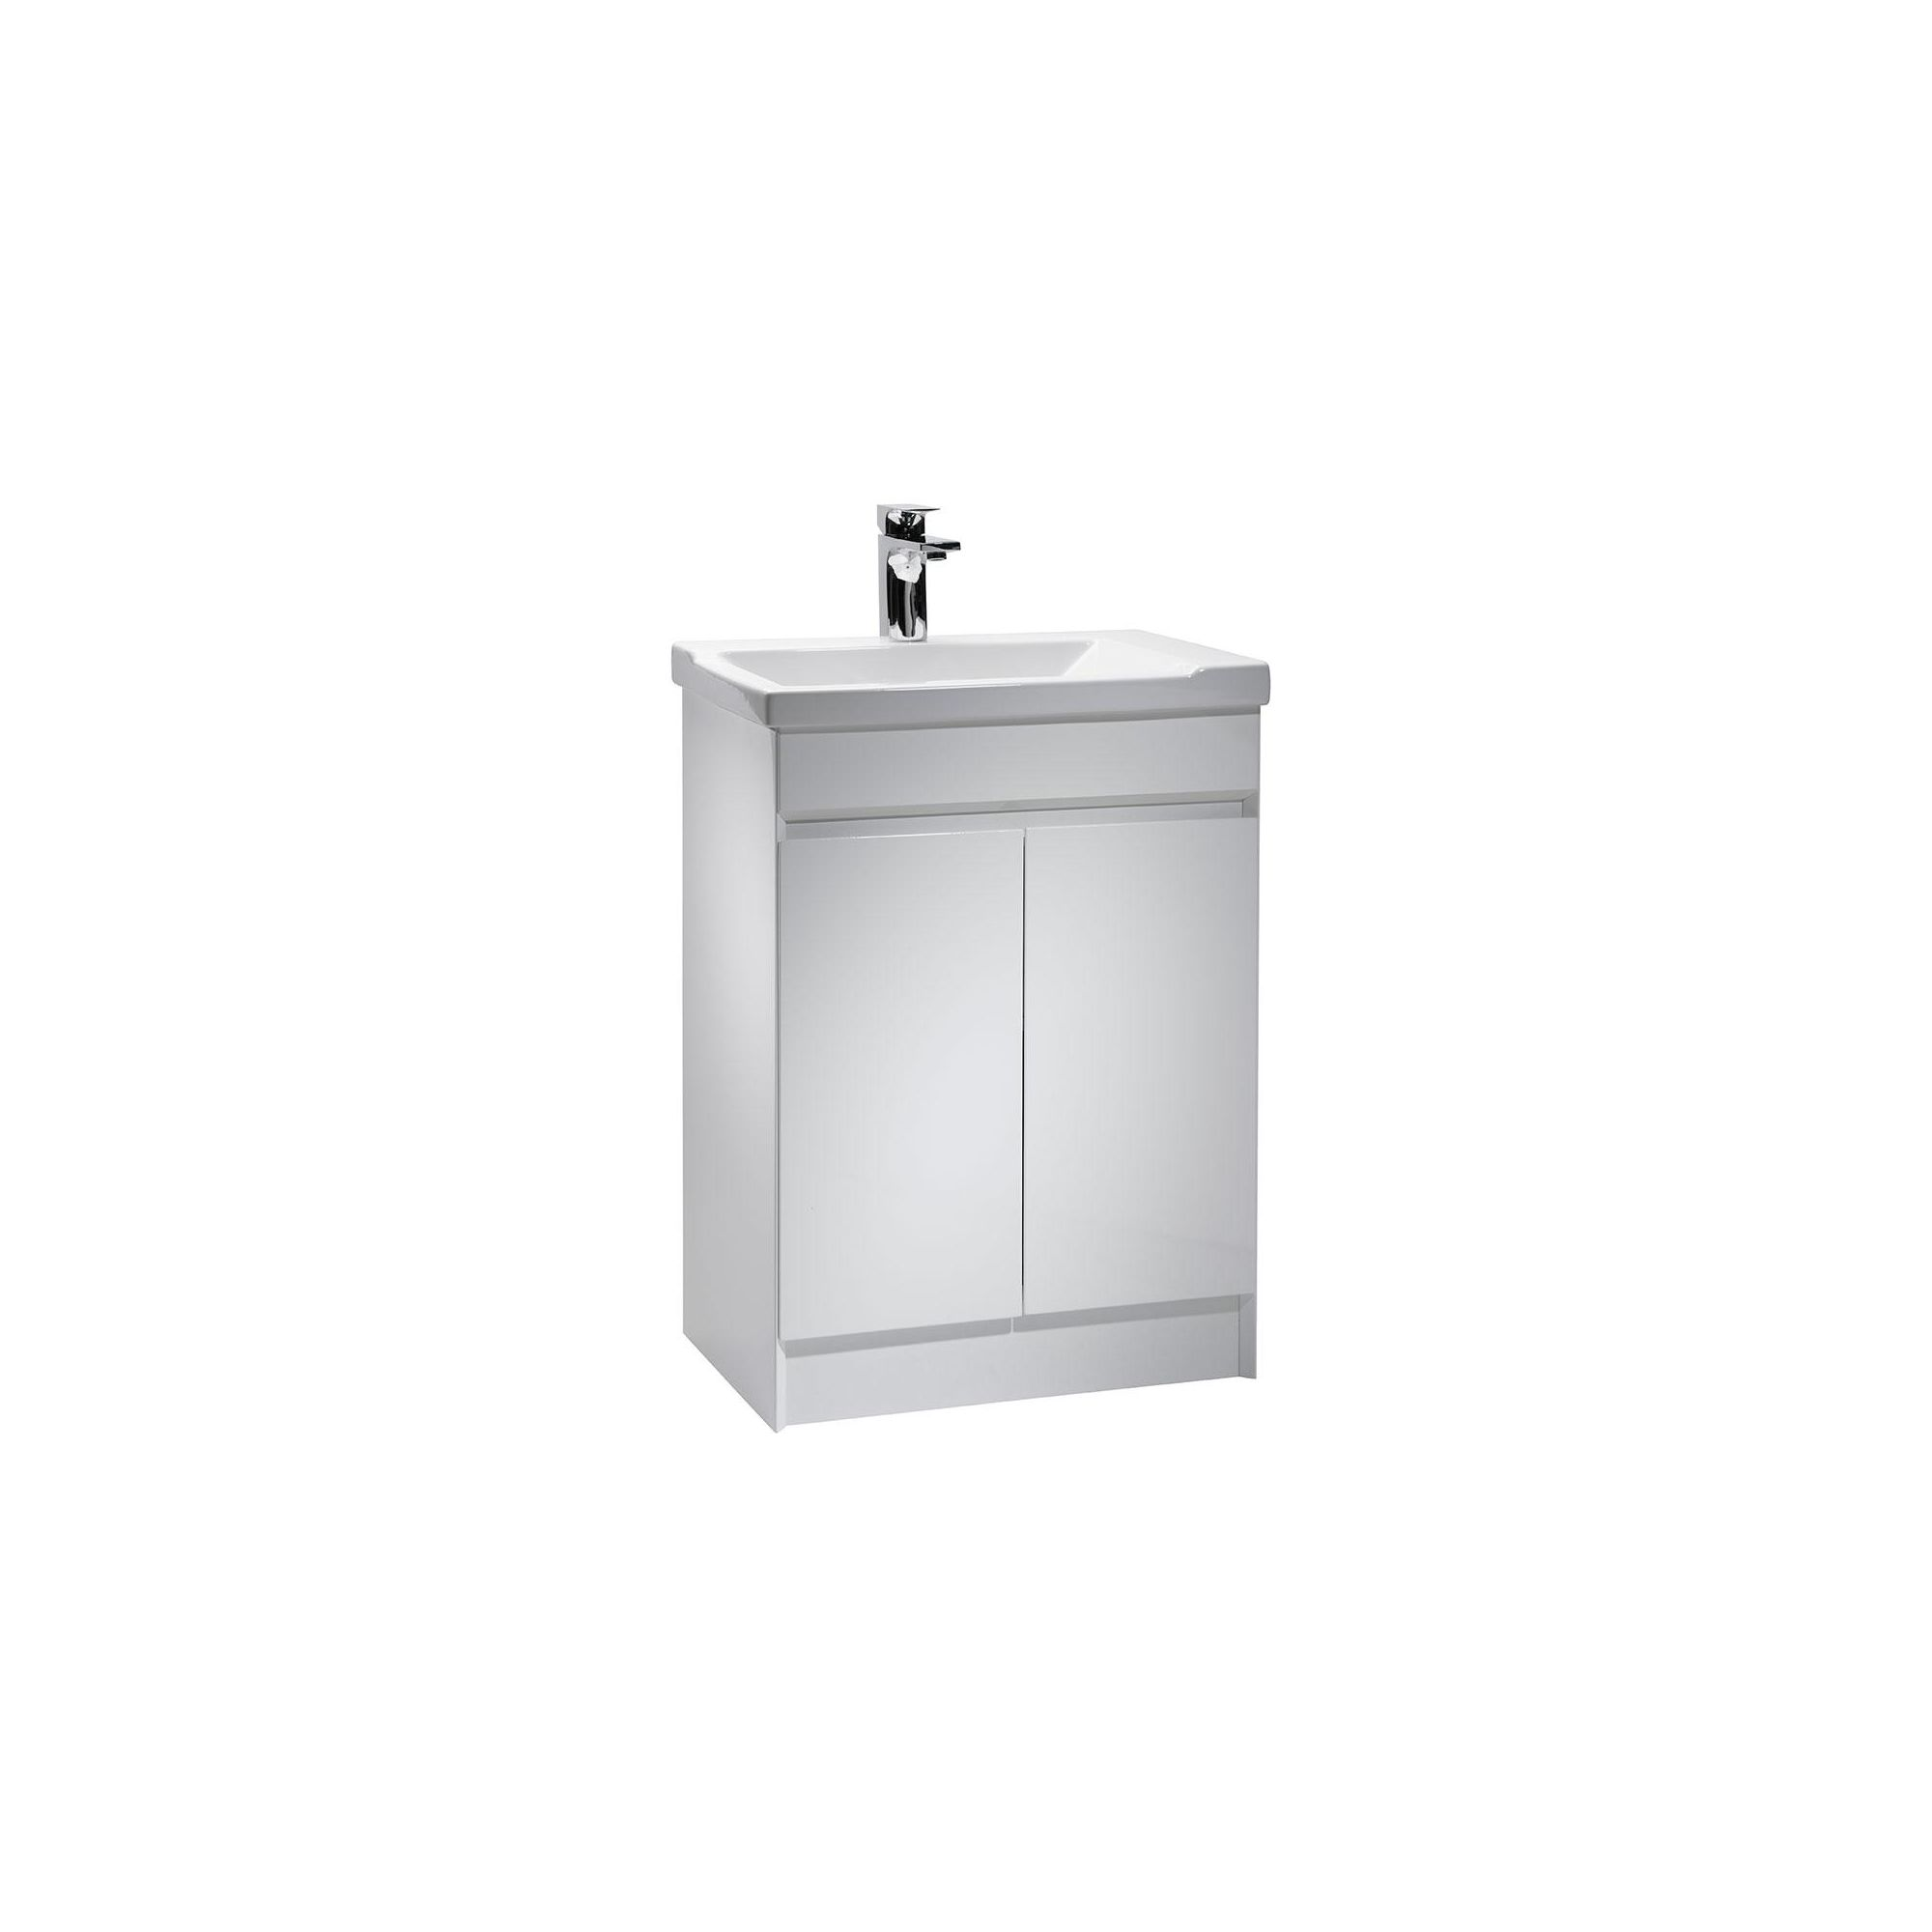 Tavistock Sharp White Floor Standing Cabinet and Basin - 1 Tap Hole - 600mm Wide